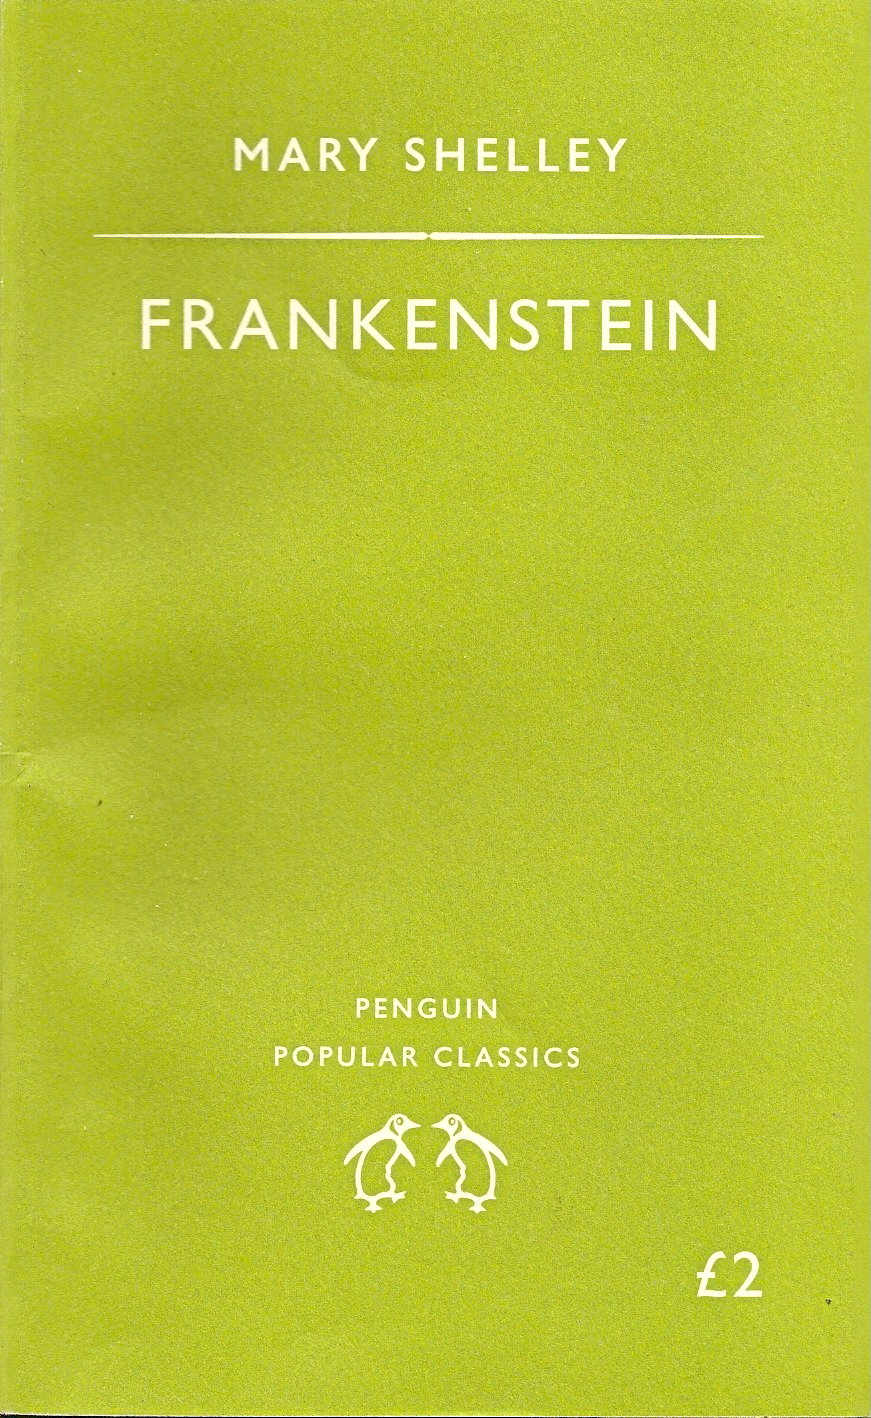 the destiny of frankenstein Is it wrong that my family has watched 'young frankenstein' so many times that its  quotes have  there's no escaping destiny, you know.